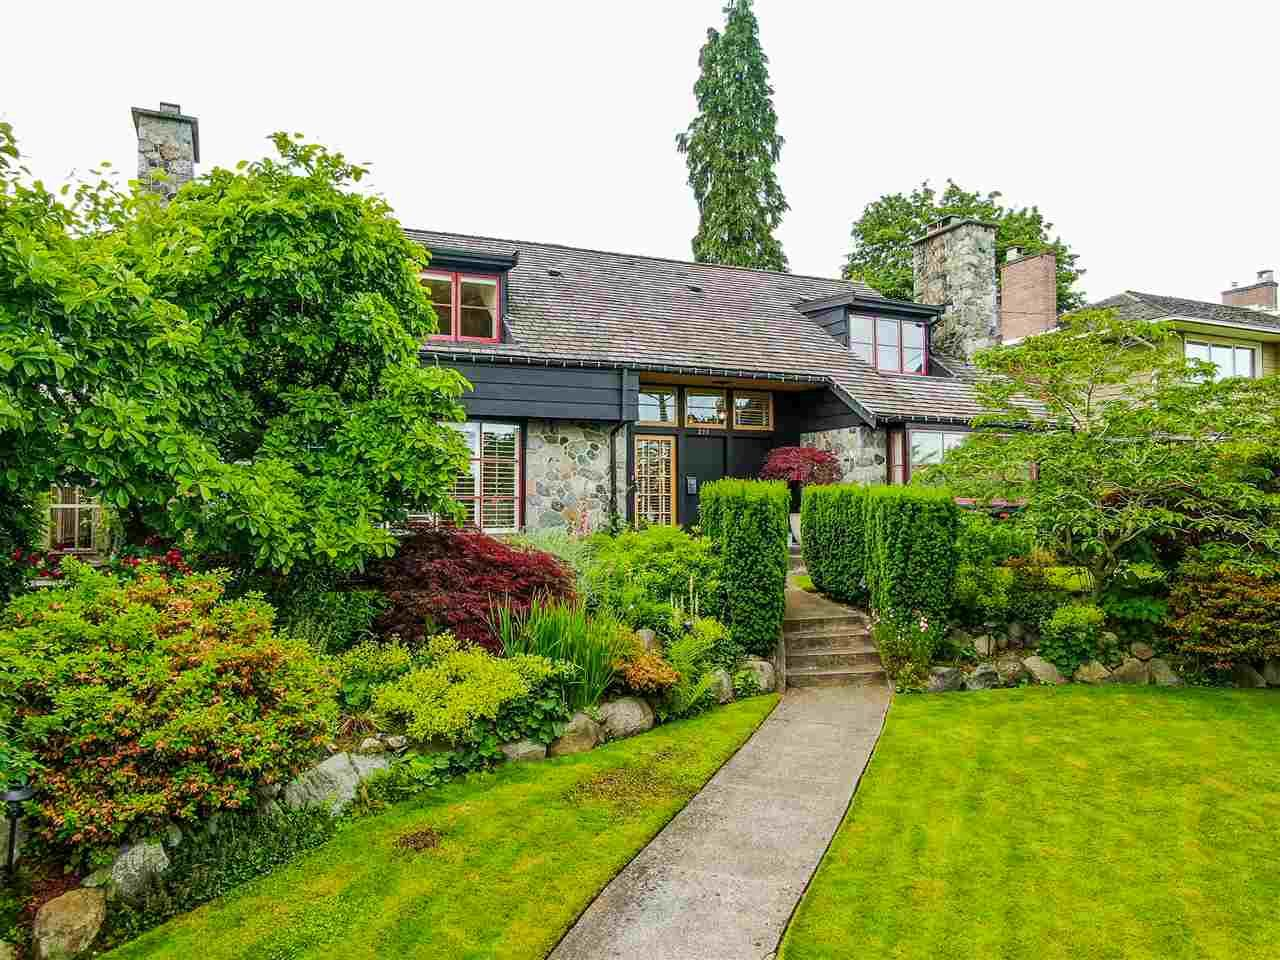 """Main Photo: 211 QUEENS Avenue in New Westminster: Queens Park House for sale in """"Queens Park"""" : MLS®# R2468151"""